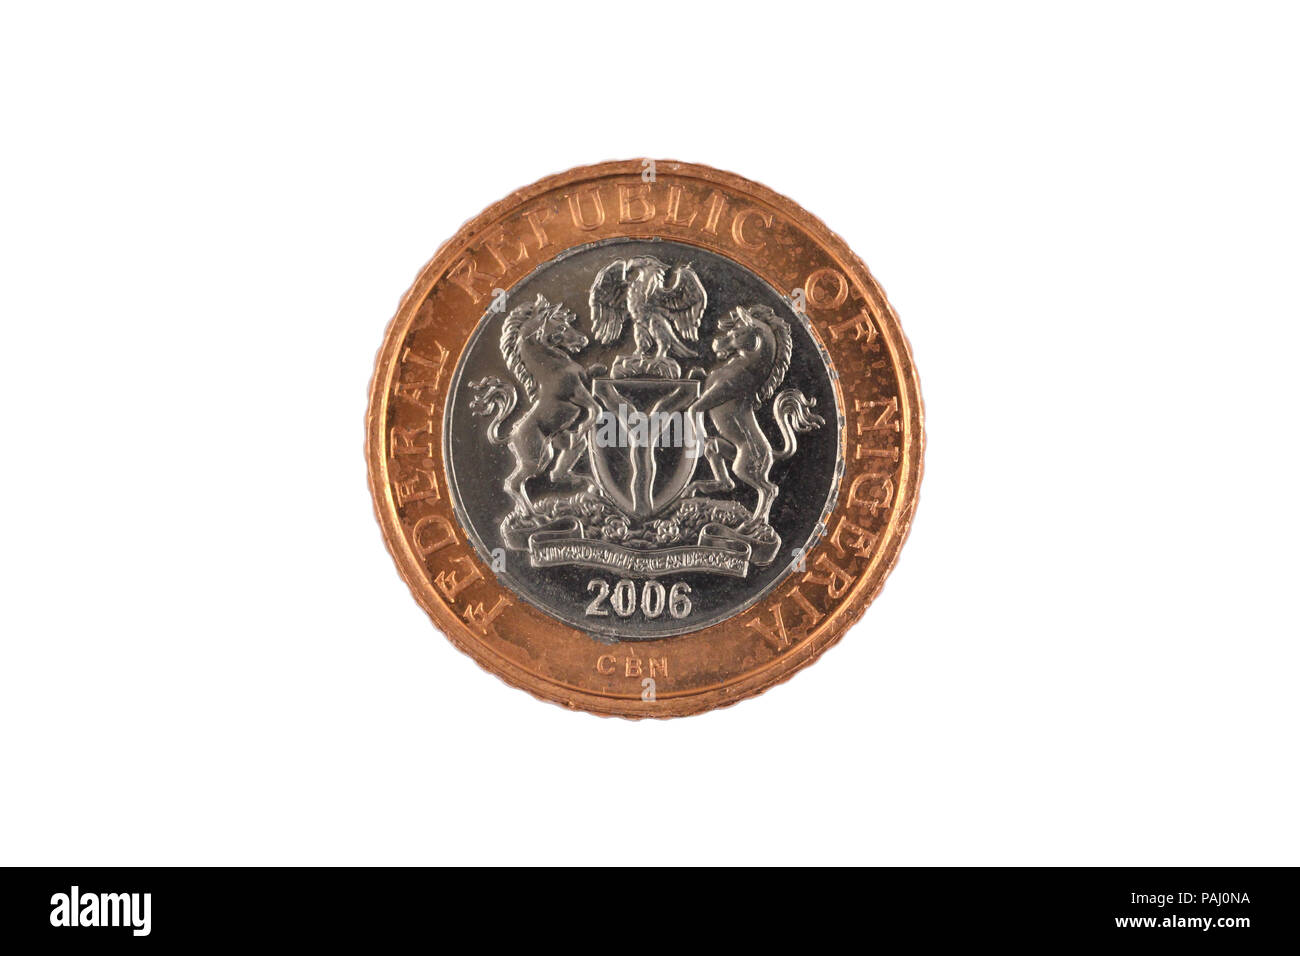 A close up image of a Nigerian two Naira bimettalic coin isolated on a white background - Stock Image